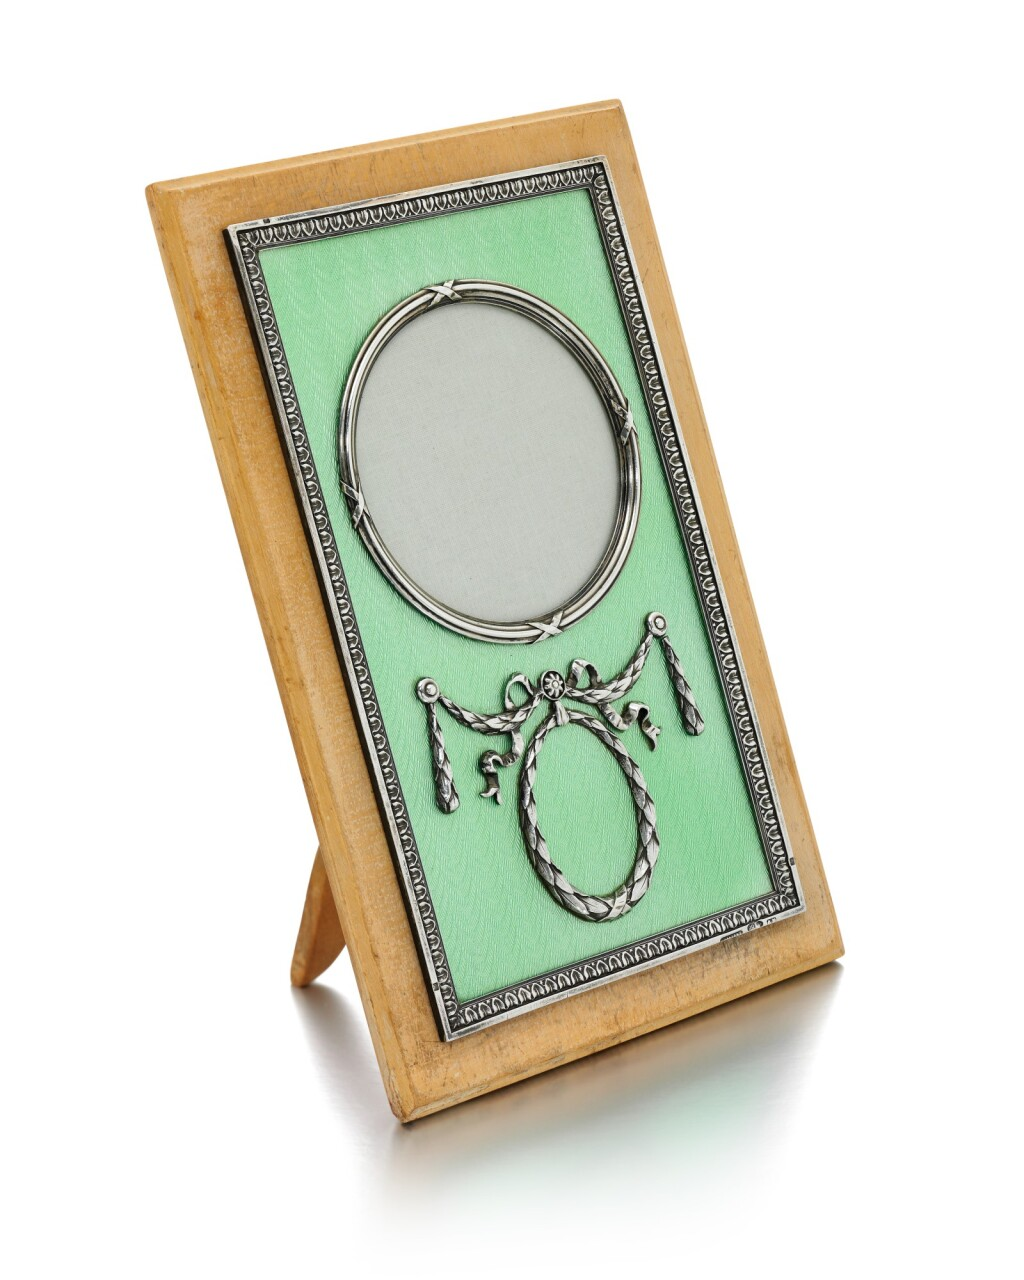 A FABERGÉ SILVER AND GUILLOCHÉ ENAMEL MOUNTED WOODEN FRAME, WORKMASTER ANDERS (ANTTI) NEVALAINEN, ST PETERSBURG, 1908-1917